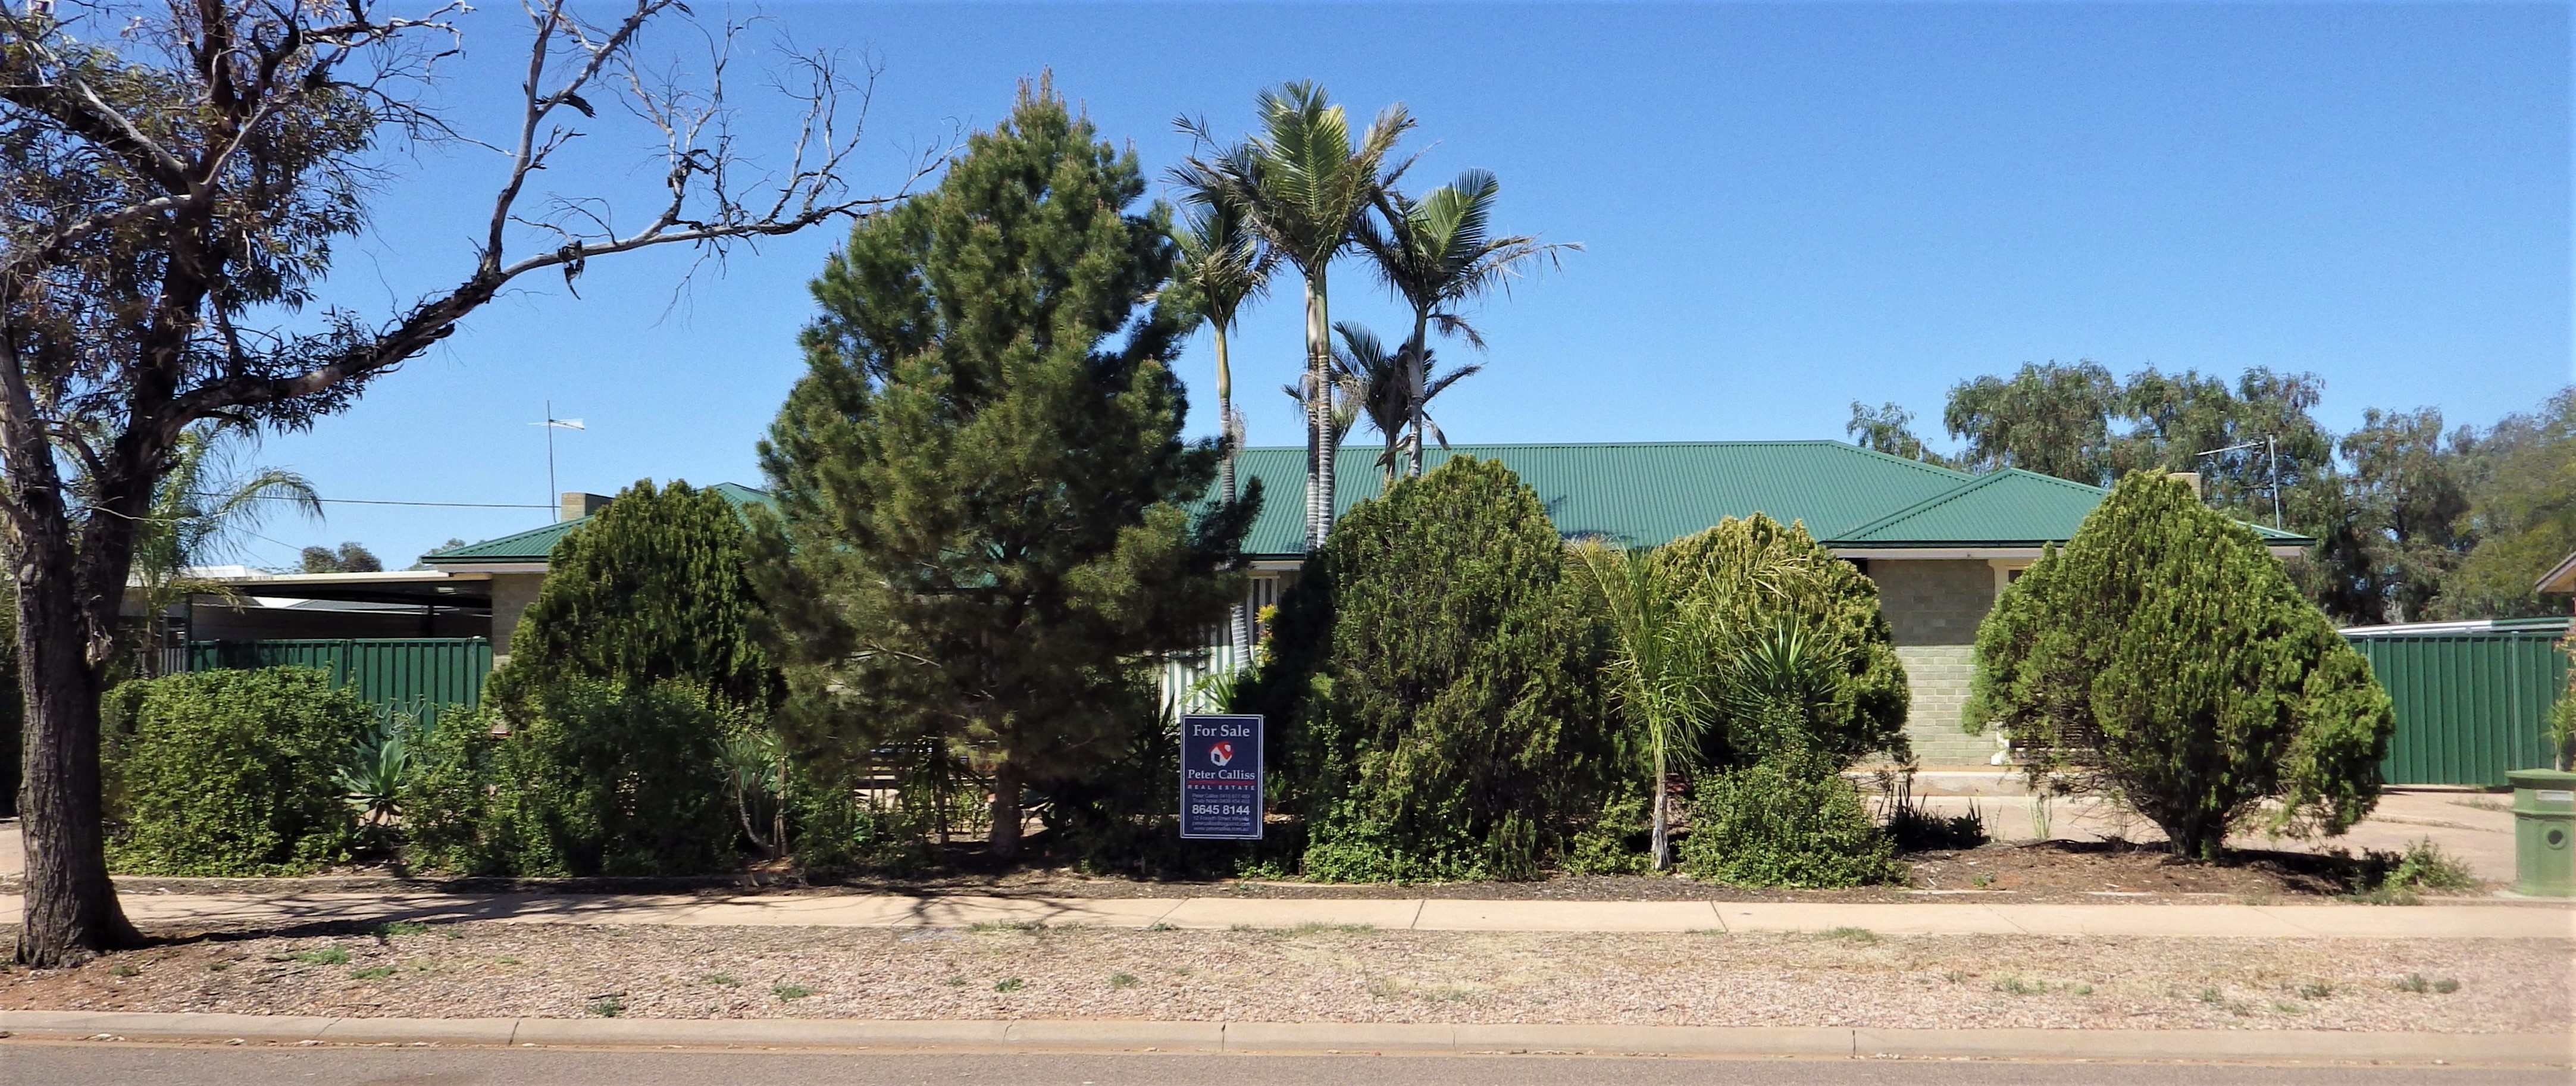 25-27 MITCHELL STREET WHYALLA STUART